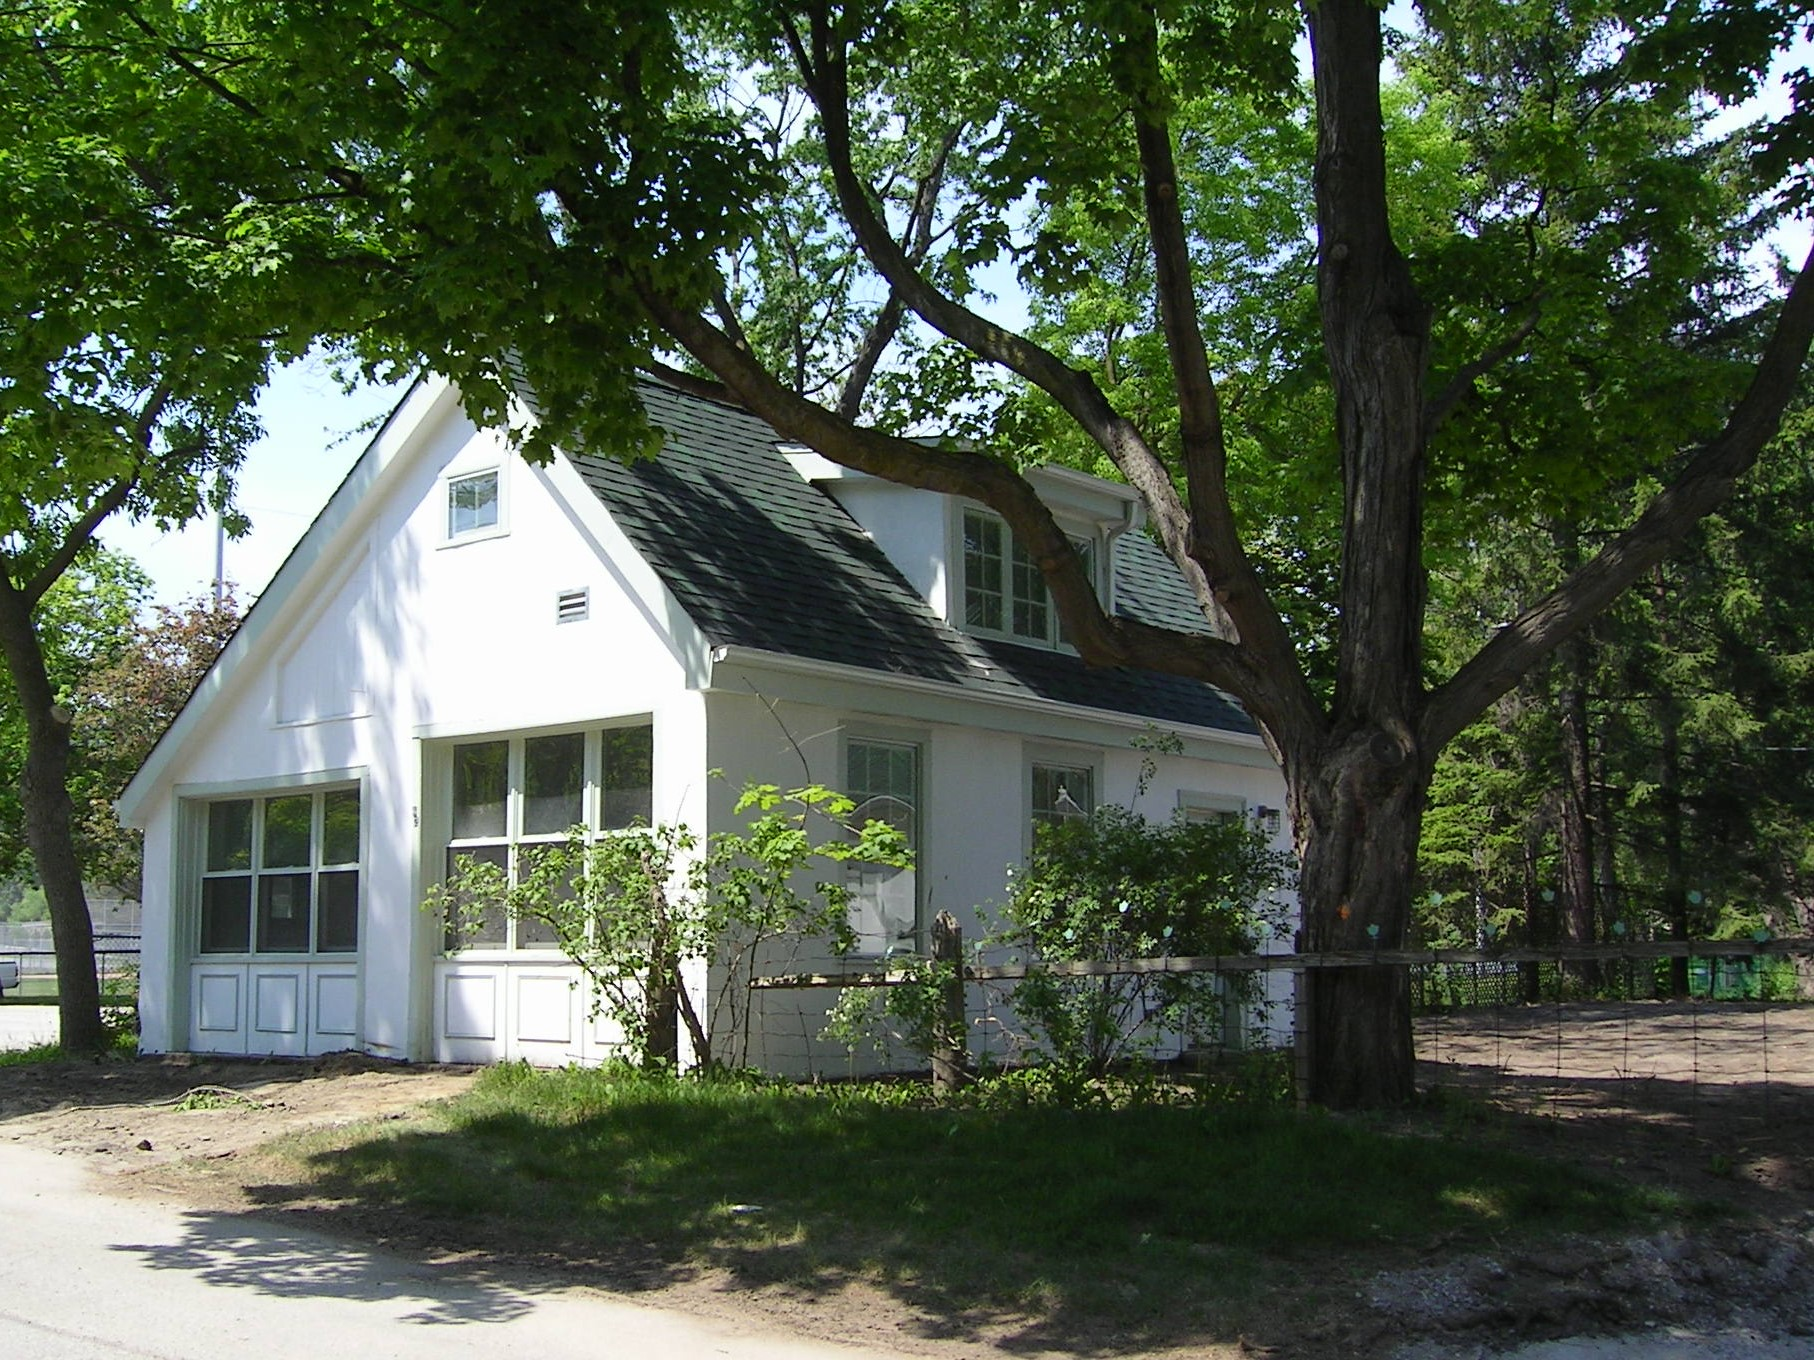 Studio at 42 Old Yonge St., Thornhill